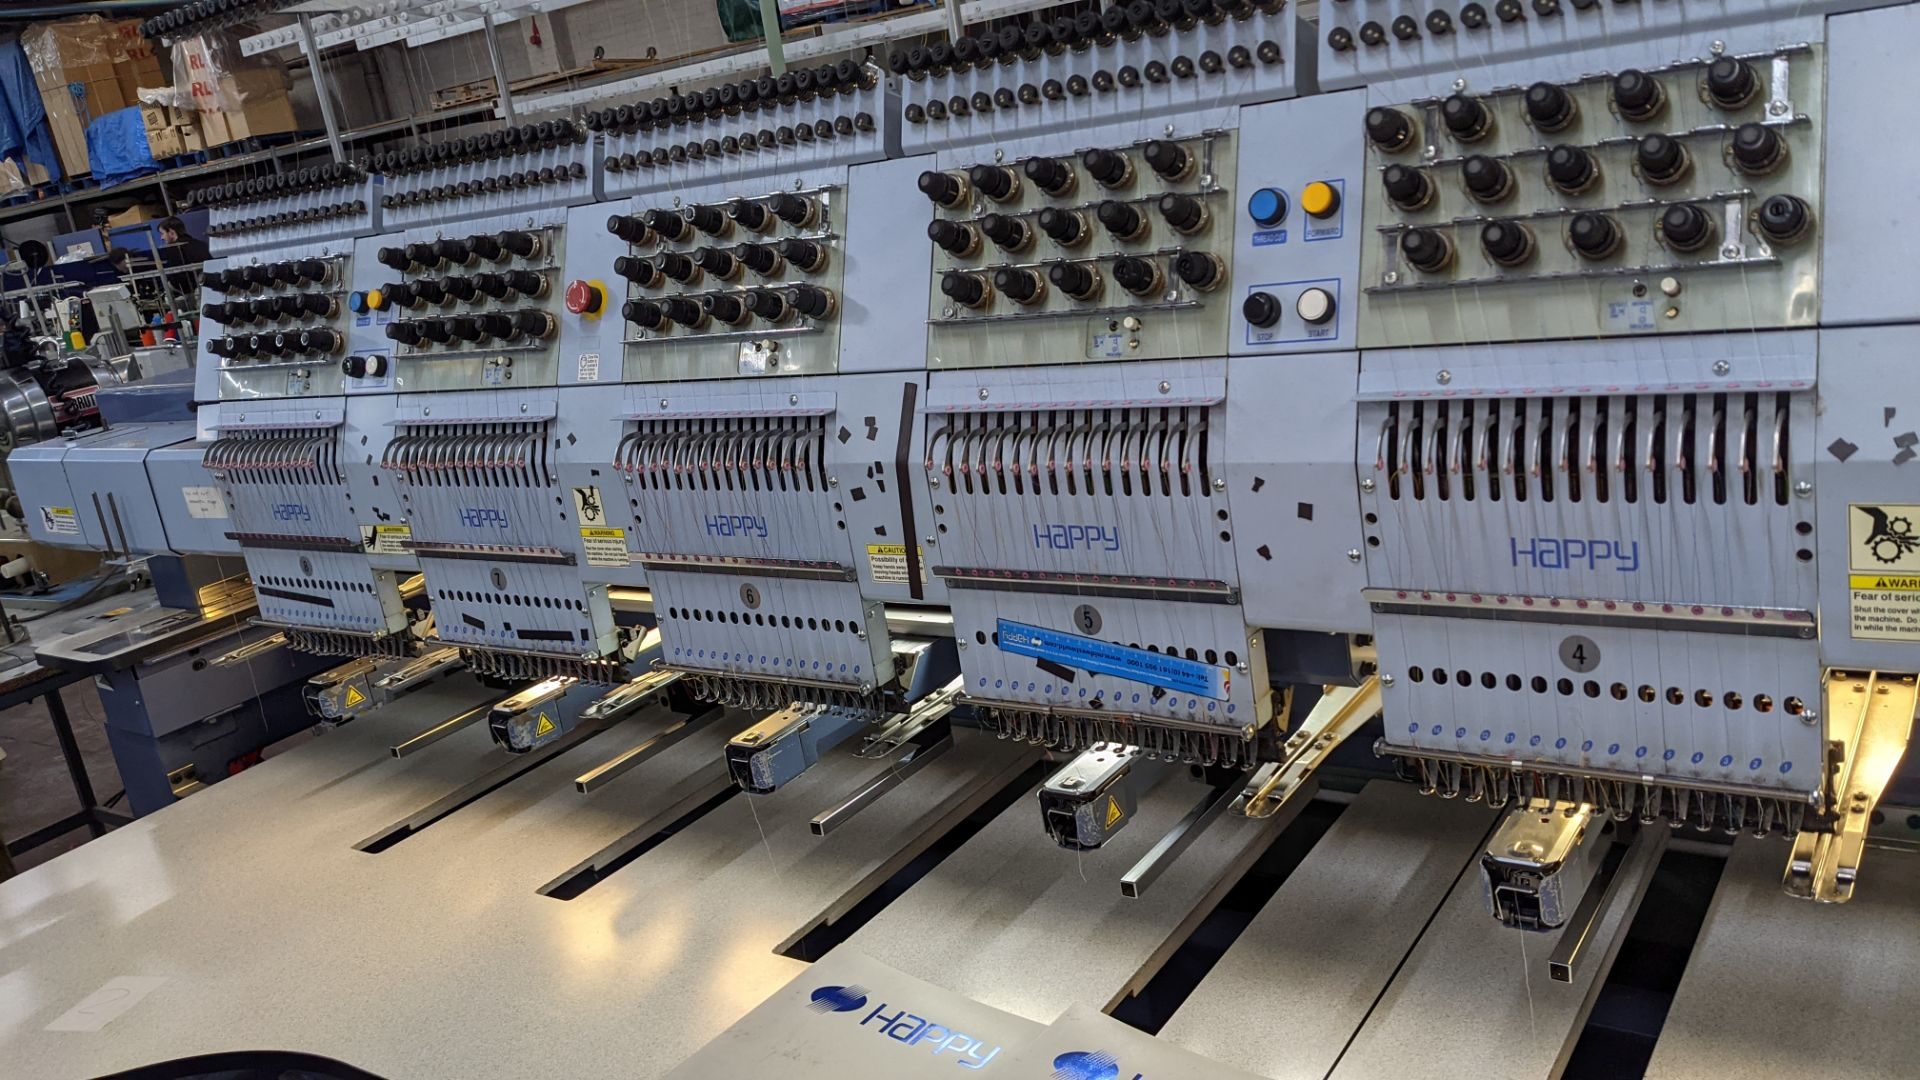 Happy 8 head embroidery machine, model HCG-1508-45TTC, 15 needles per head, including frames & other - Image 7 of 27